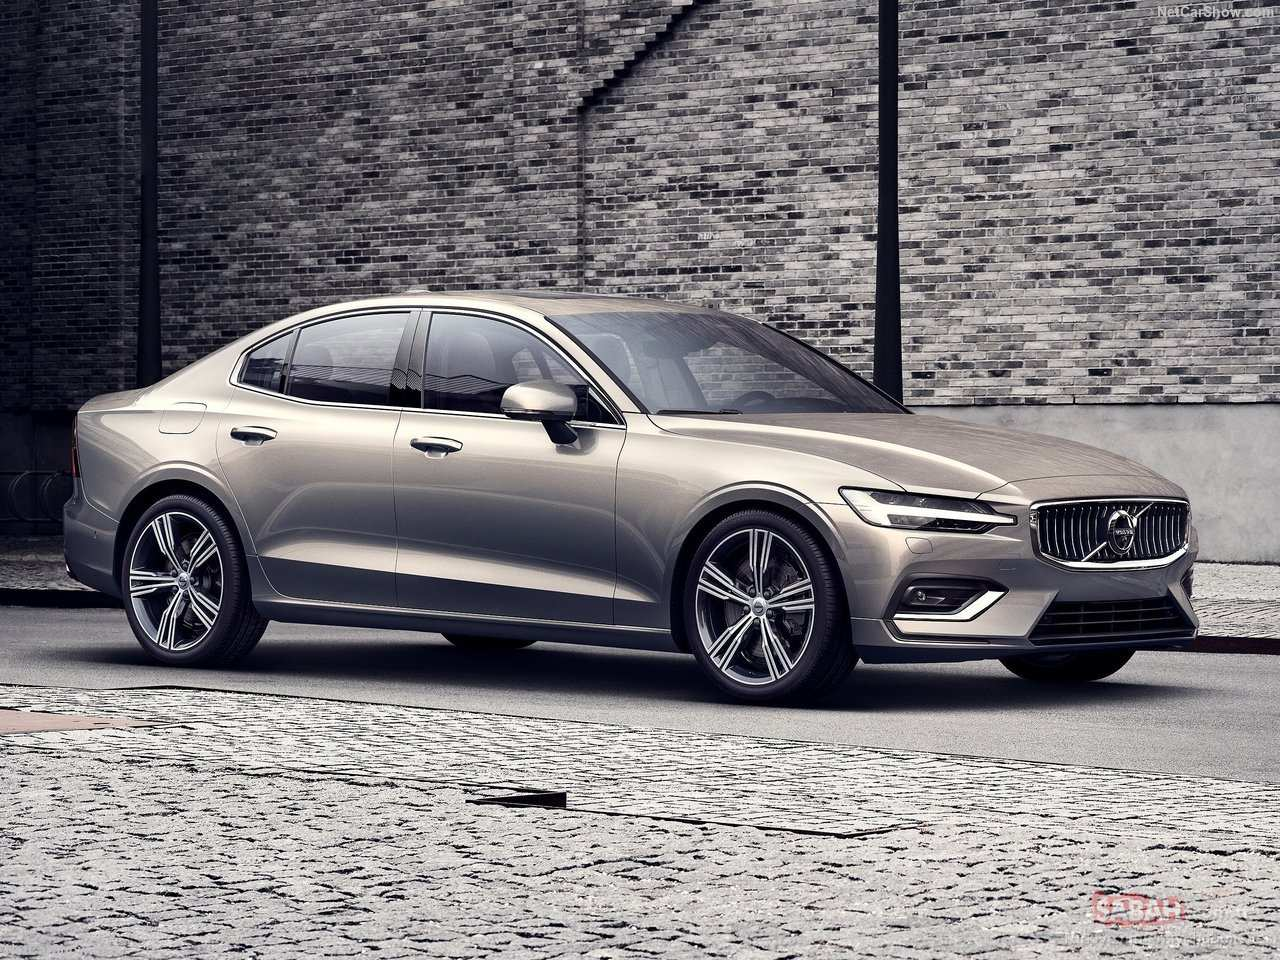 65 Great Volvo S60 2019 Exterior and Interior with Volvo S60 2019